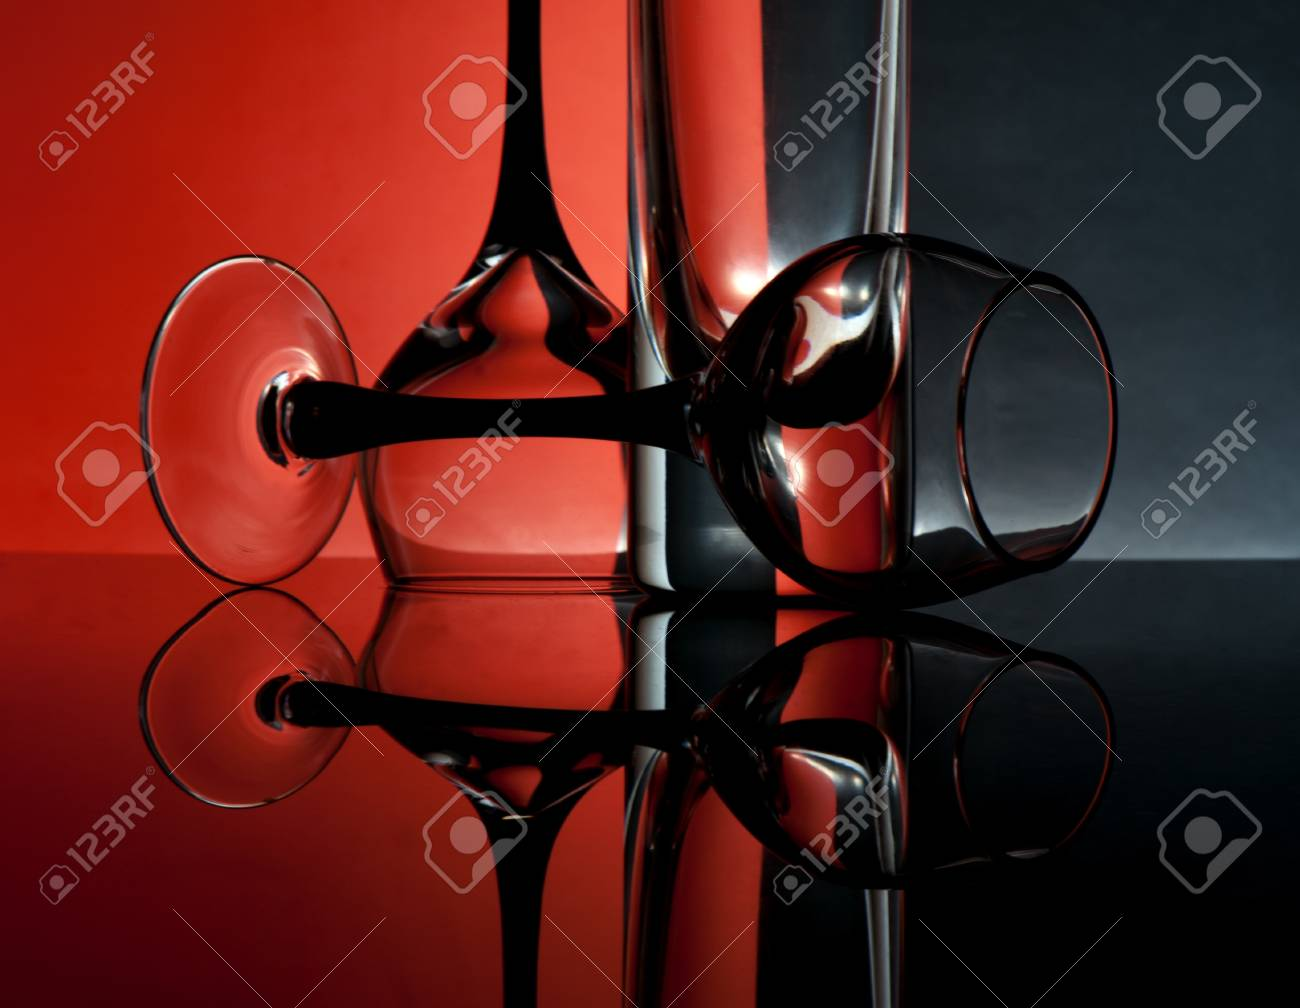 Glass goblets on a colored background abstract Stock Photo - 17468788